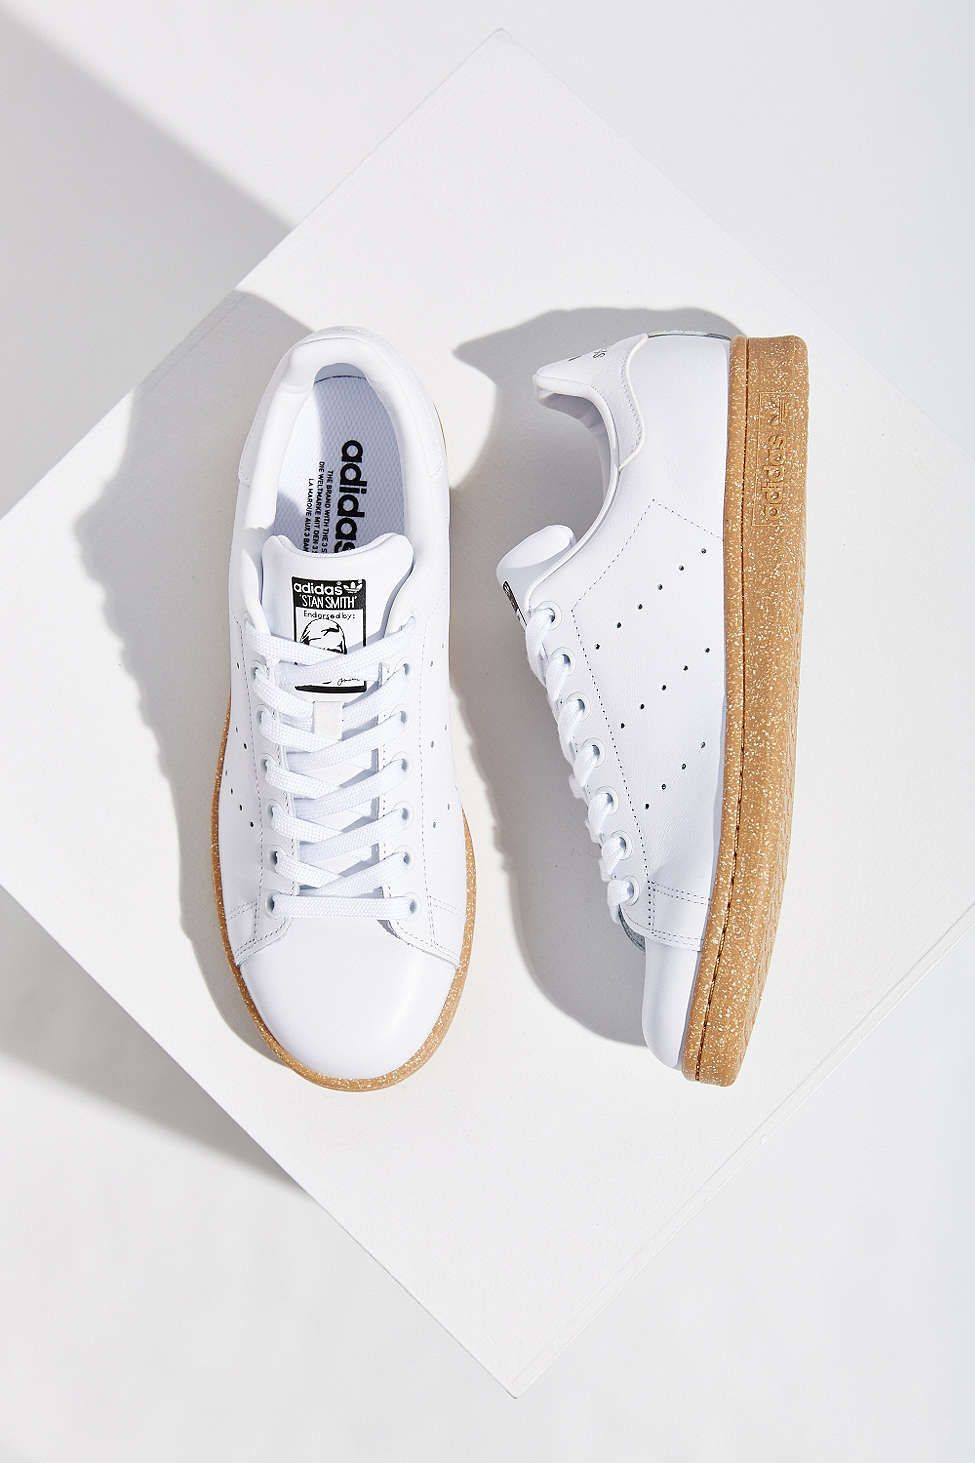 adidas Originals Stan Smith Gum-Sole Sneaker - Urban Outfitters stansmith  trainers 4b4d57377